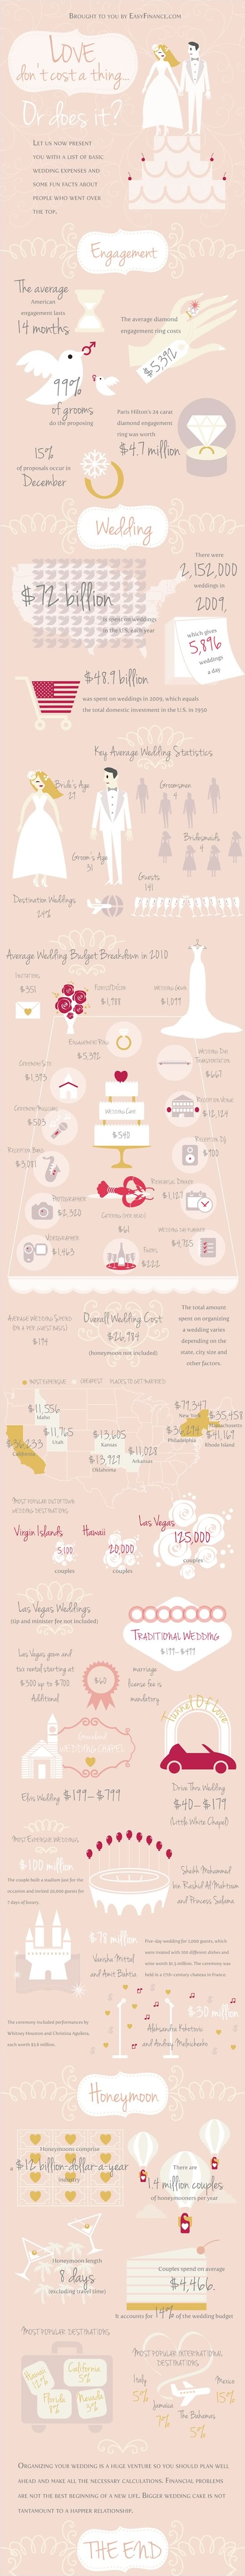 Average Cost Of Getting Married